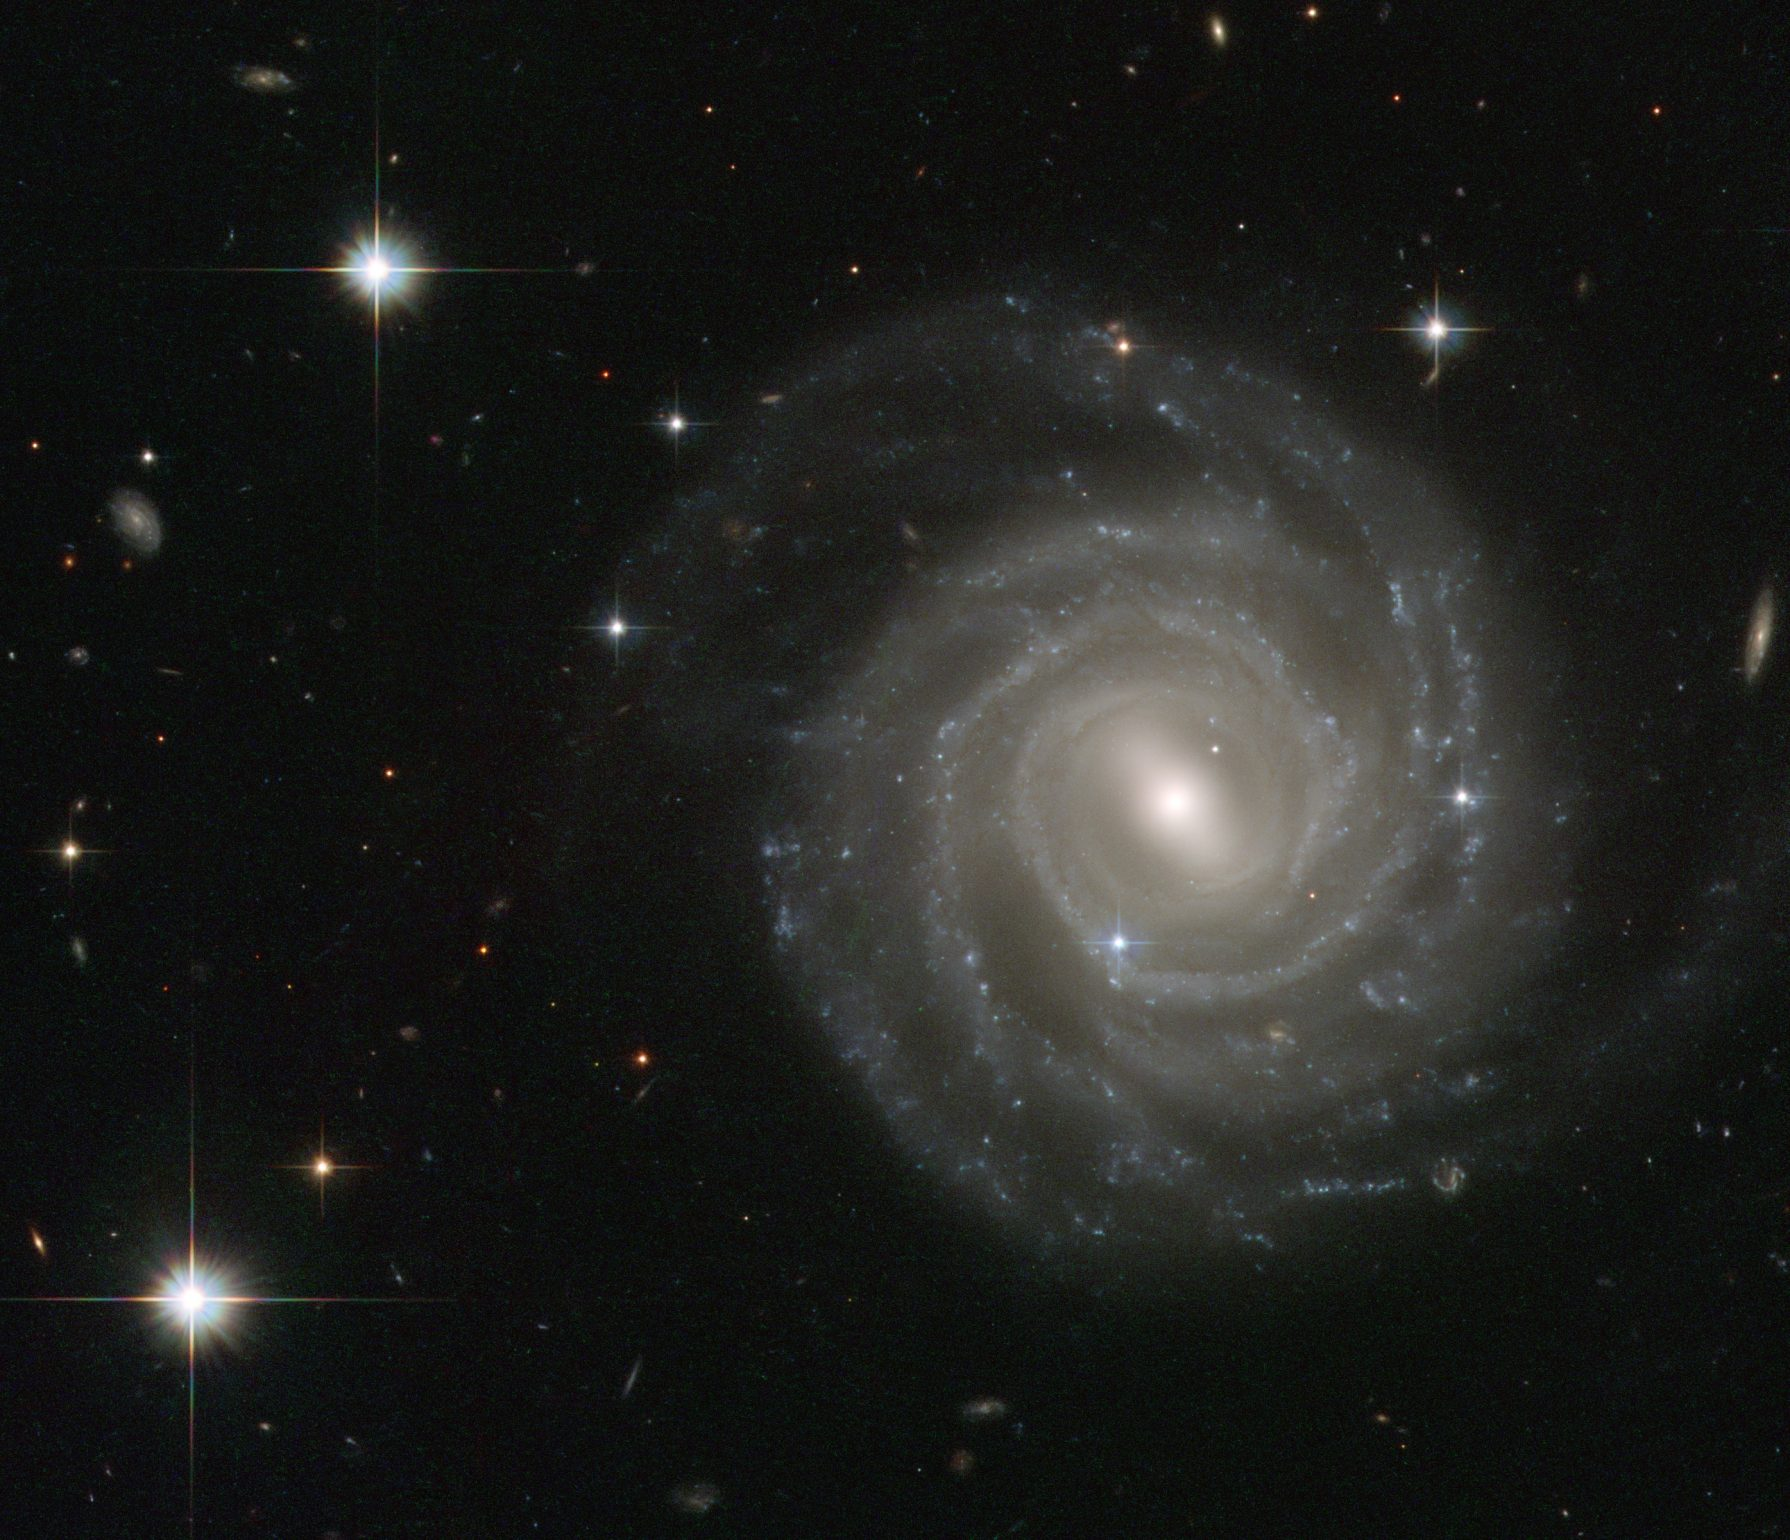 ESA/Hubble & NASA image of Barred Spiral galaxy UGC 12158